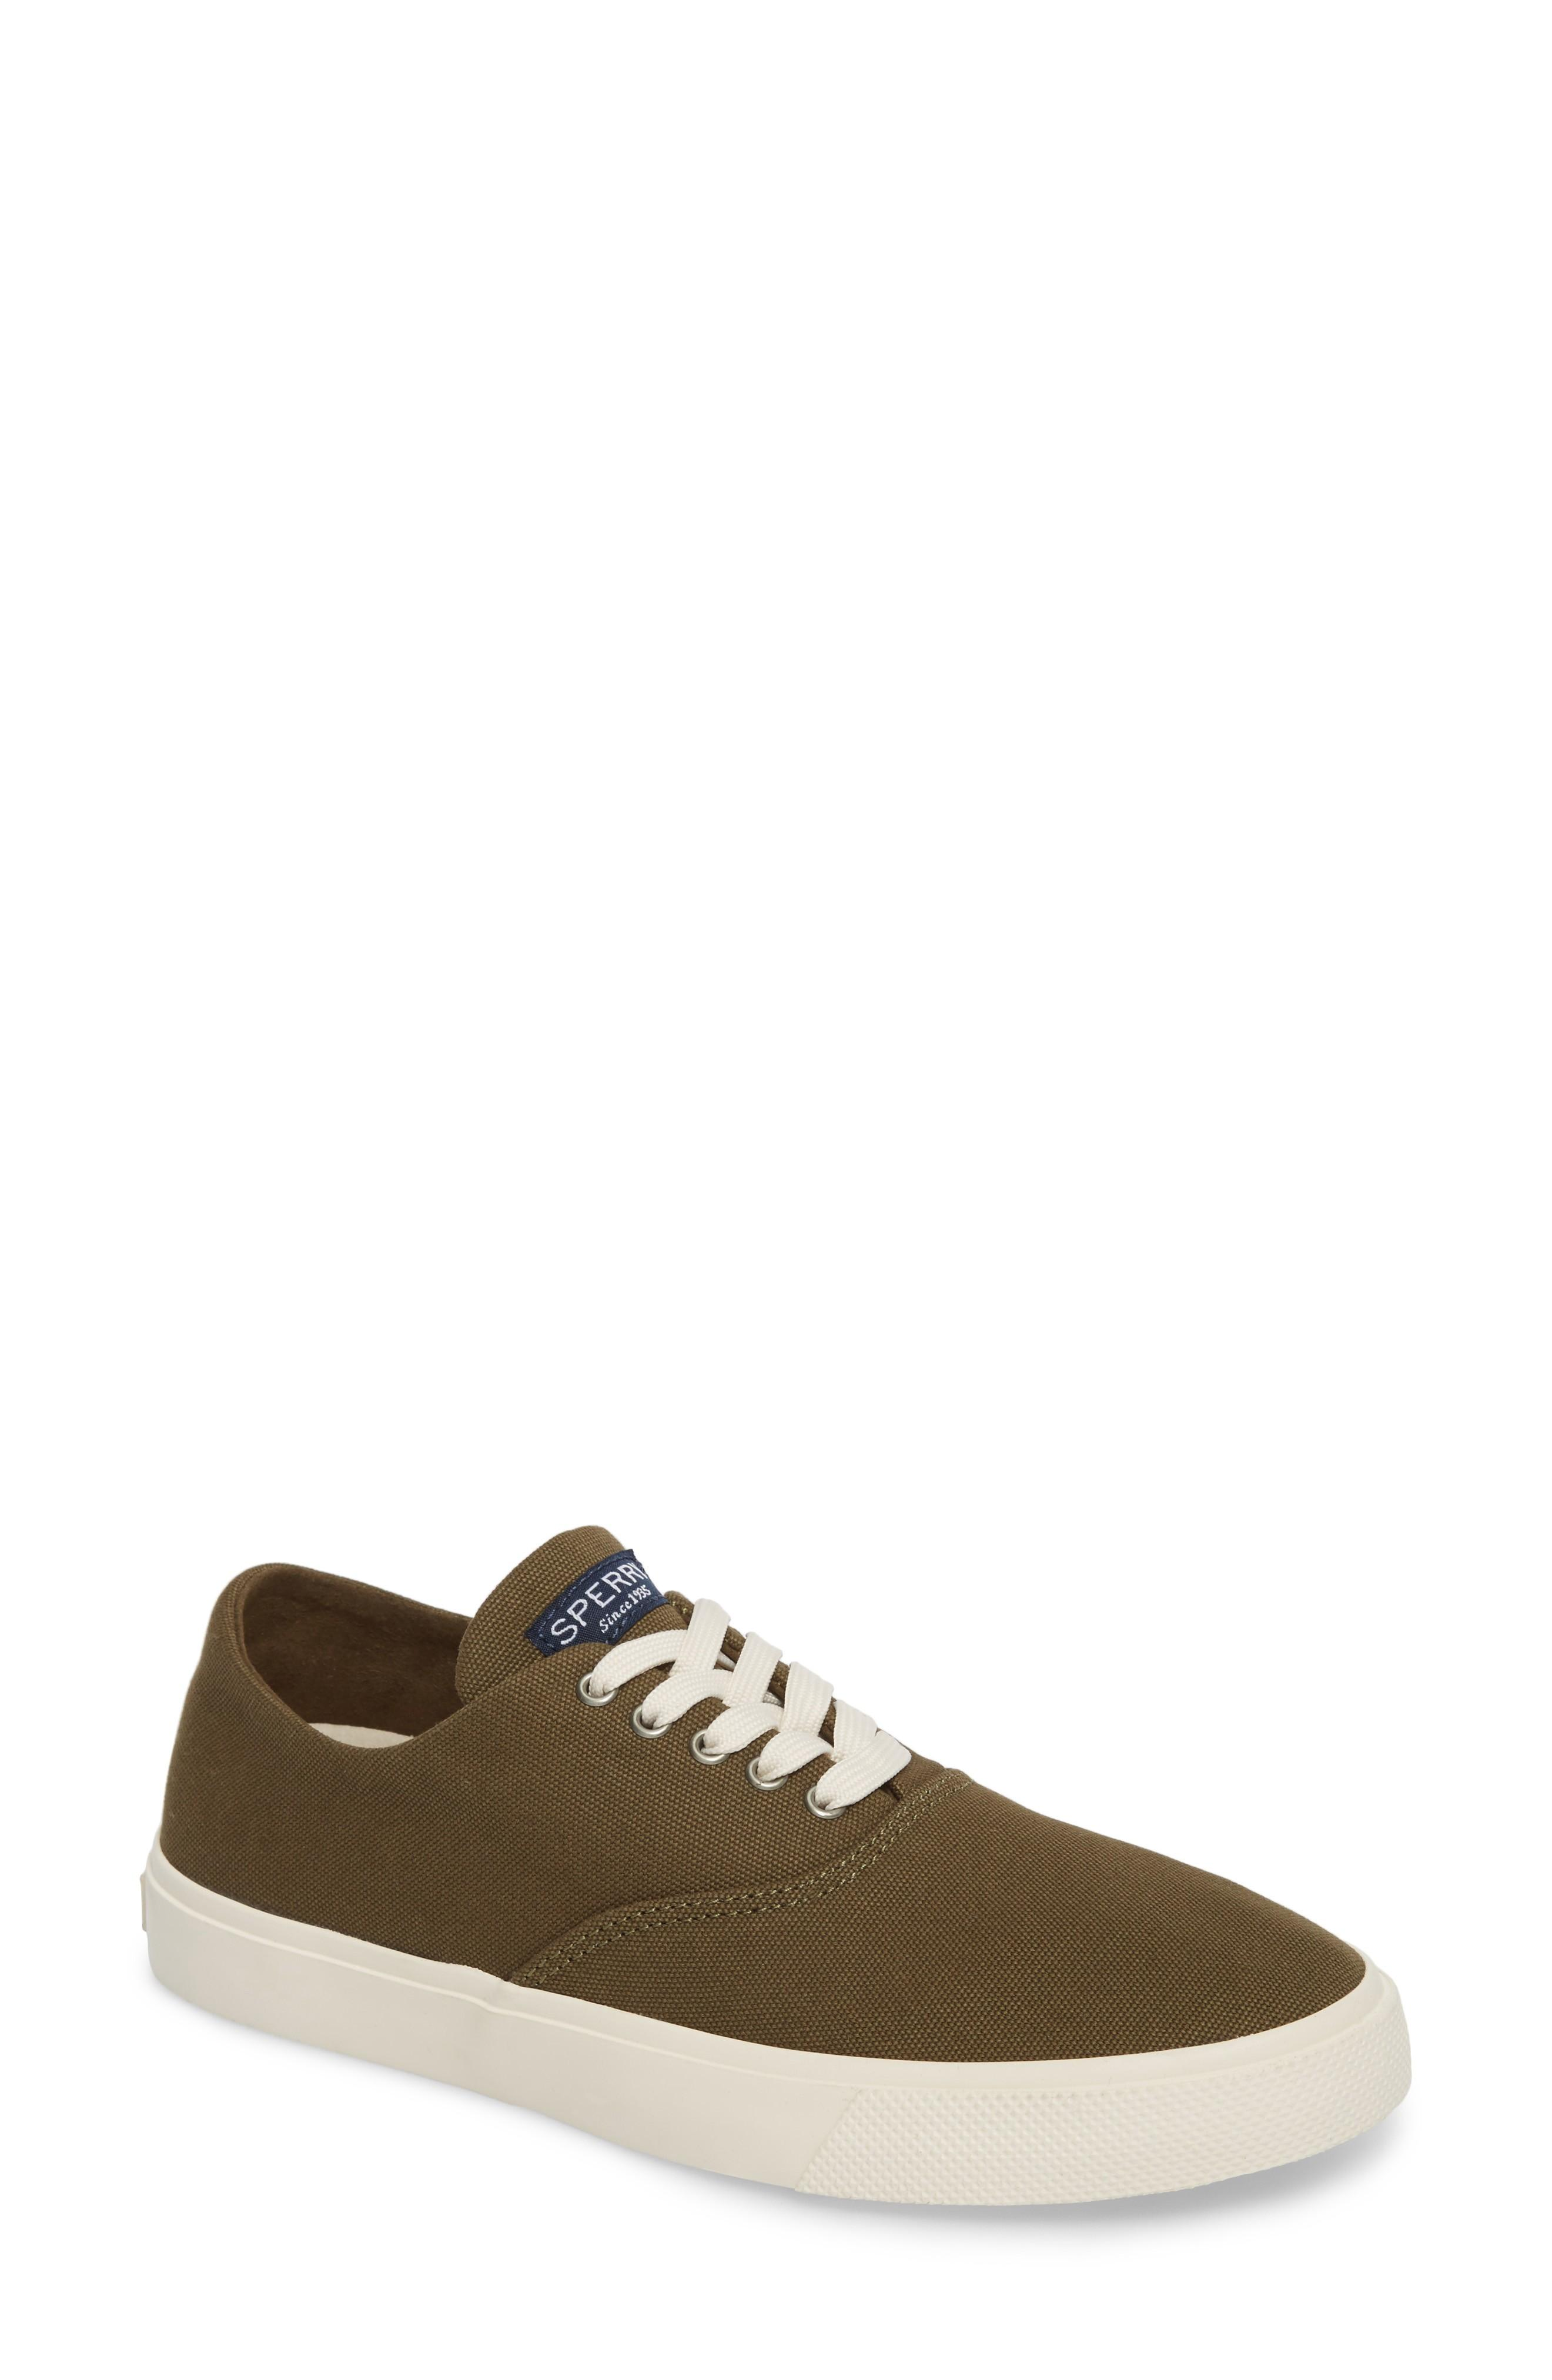 Sperry Captain's Cvo Sneaker In Olive Fabric